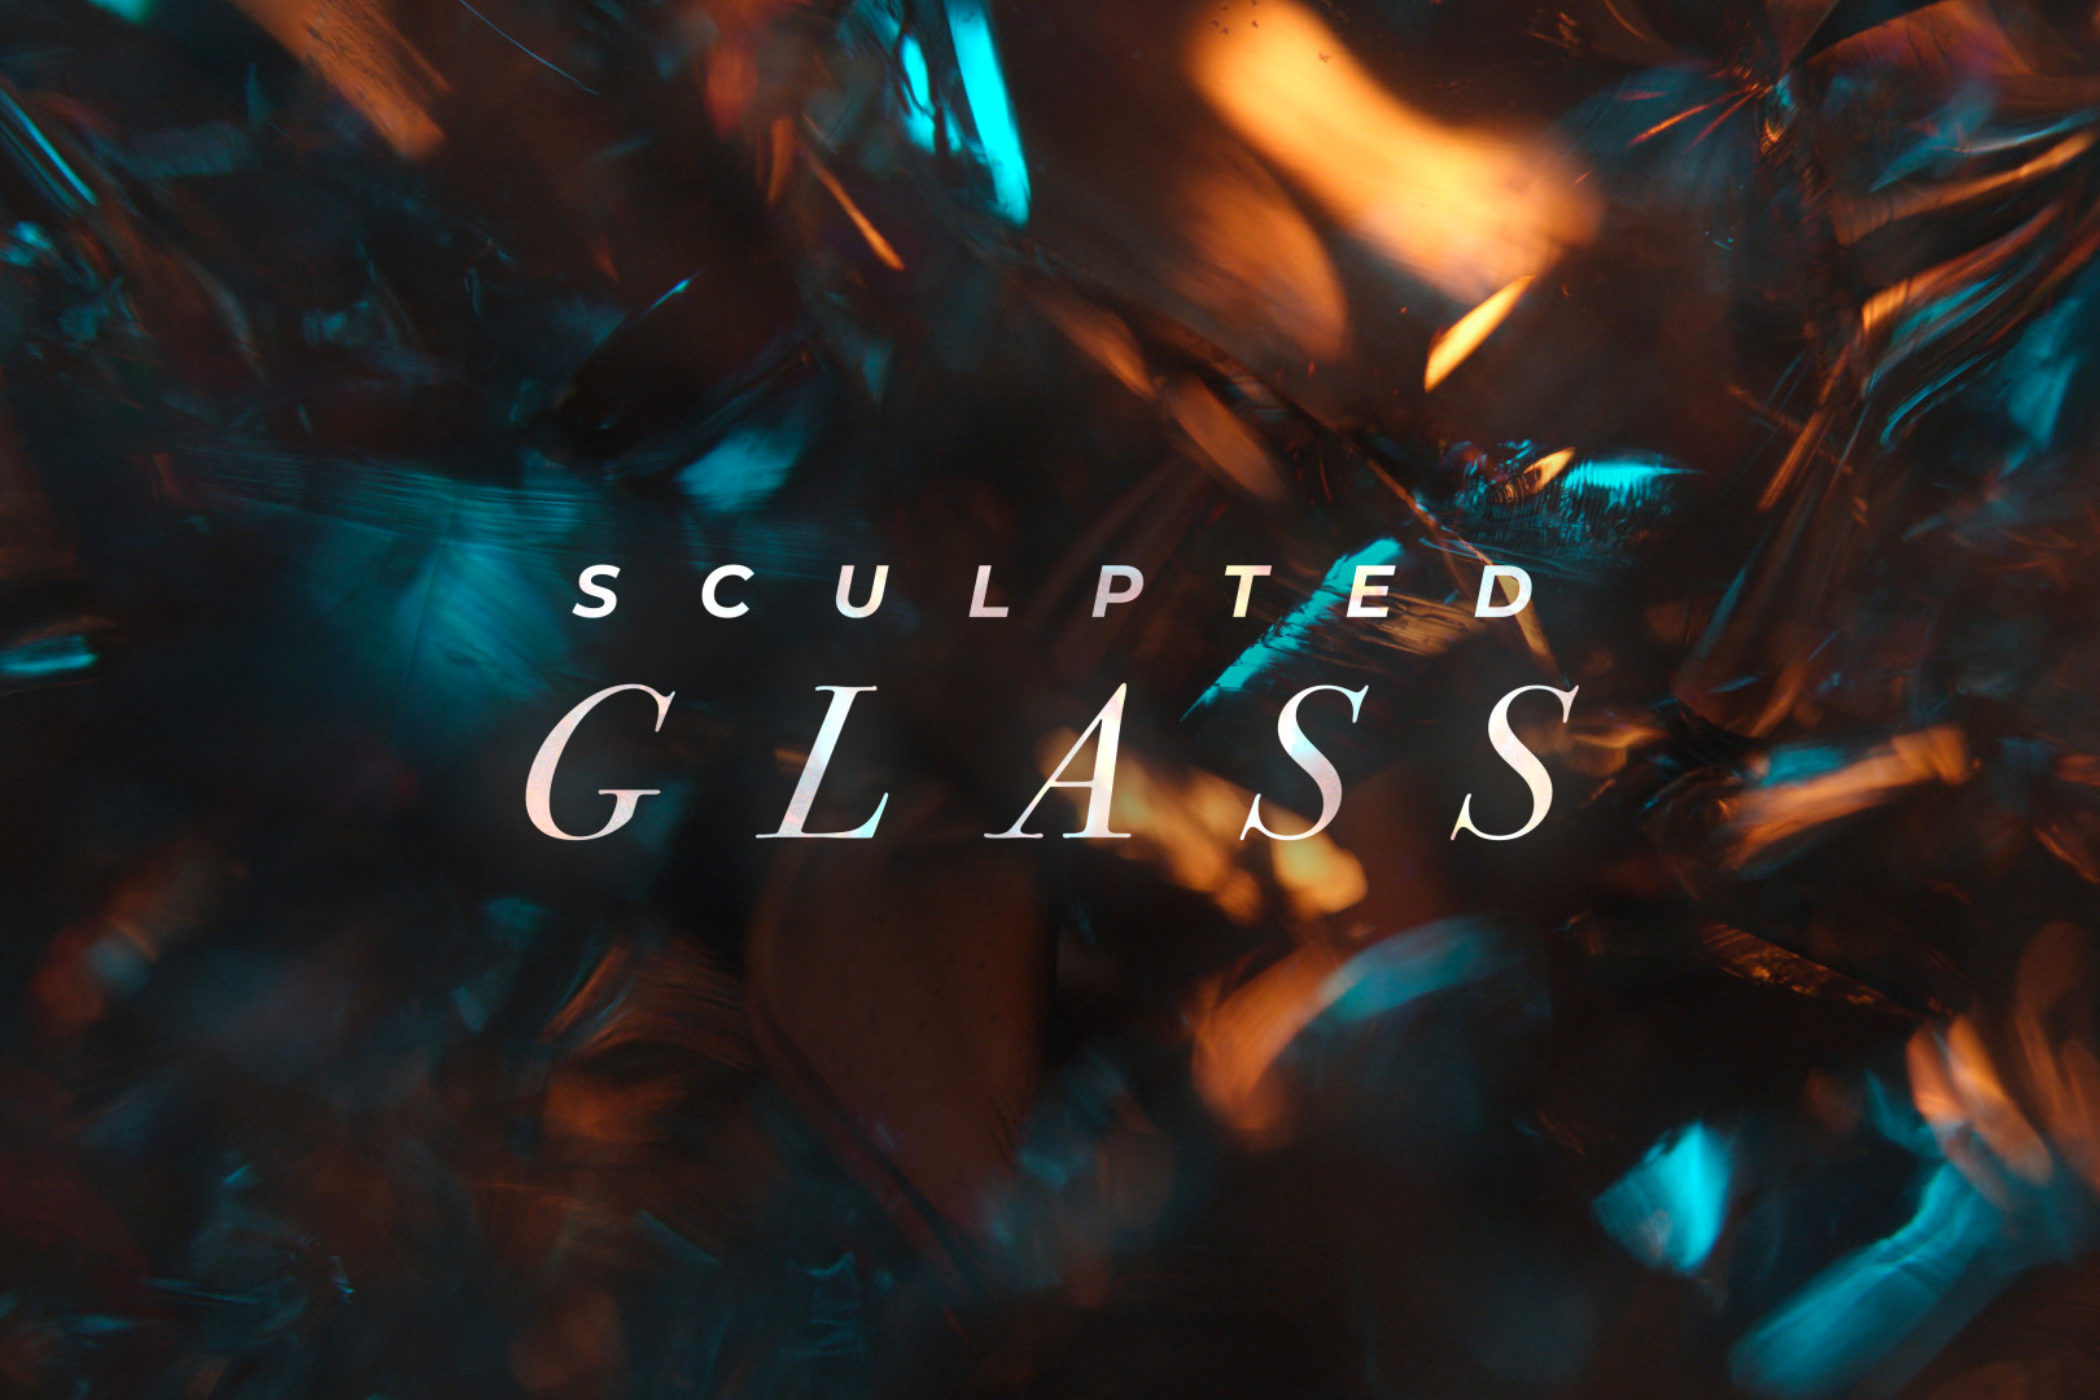 https://nusupply.co/wp-content/uploads/2020/05/Sculpted-Glass-Product-2100x1400.jpg